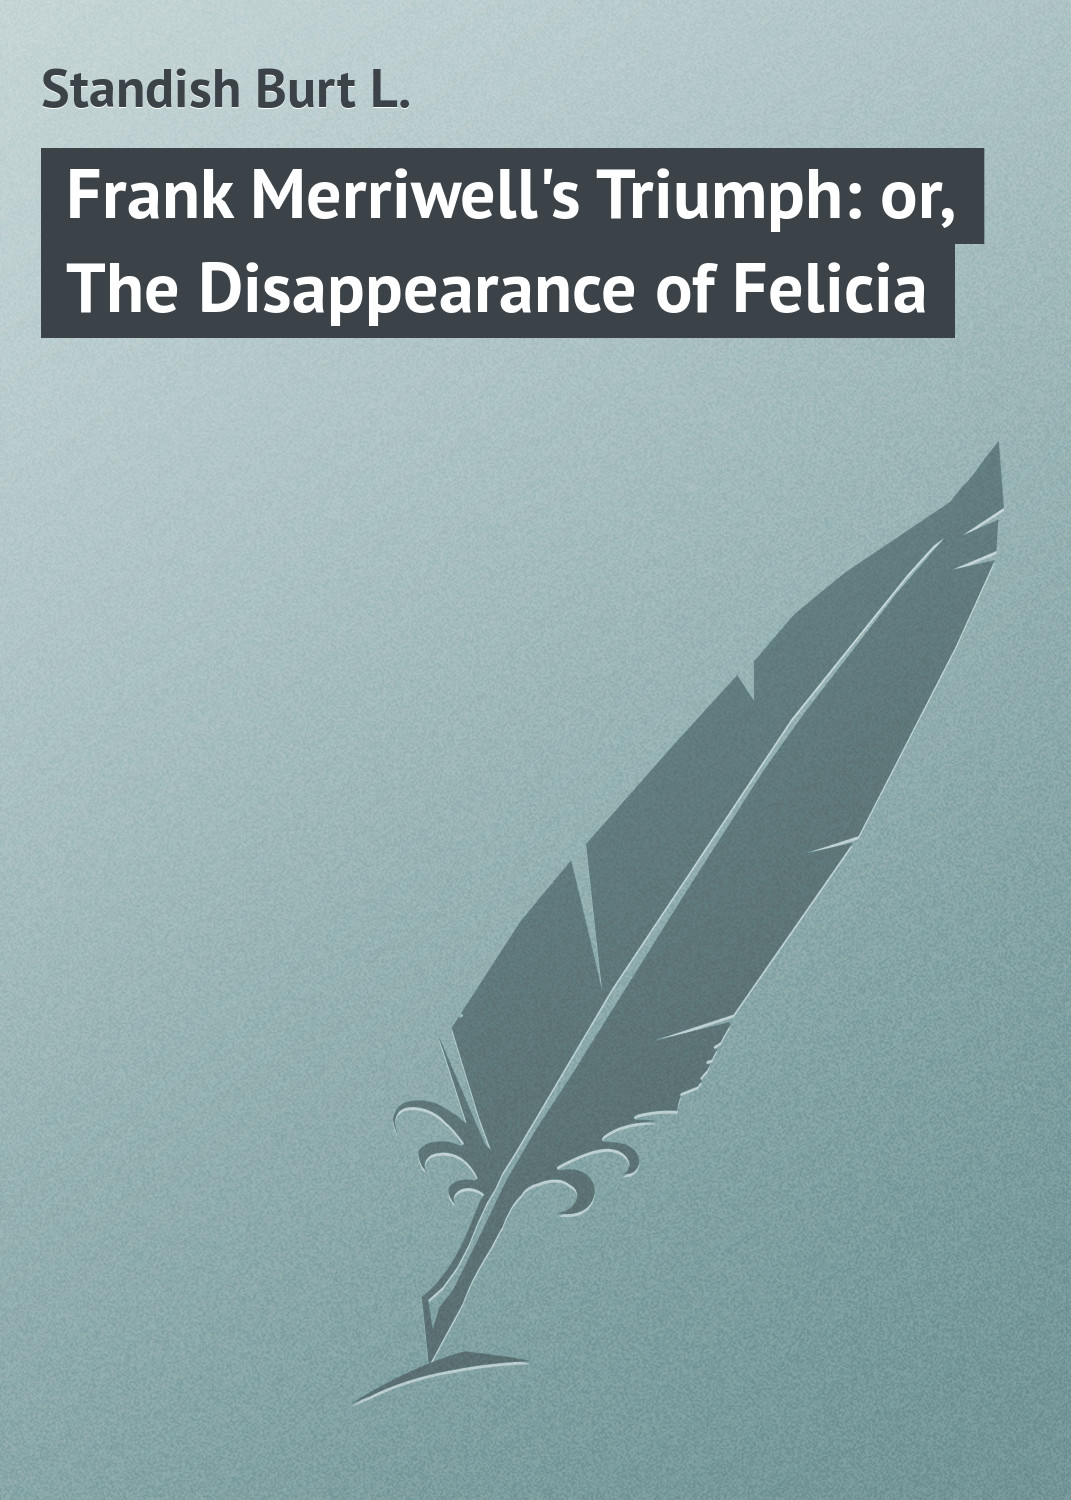 Frank Merriwell's Triumph: or, The Disappearance of Felicia